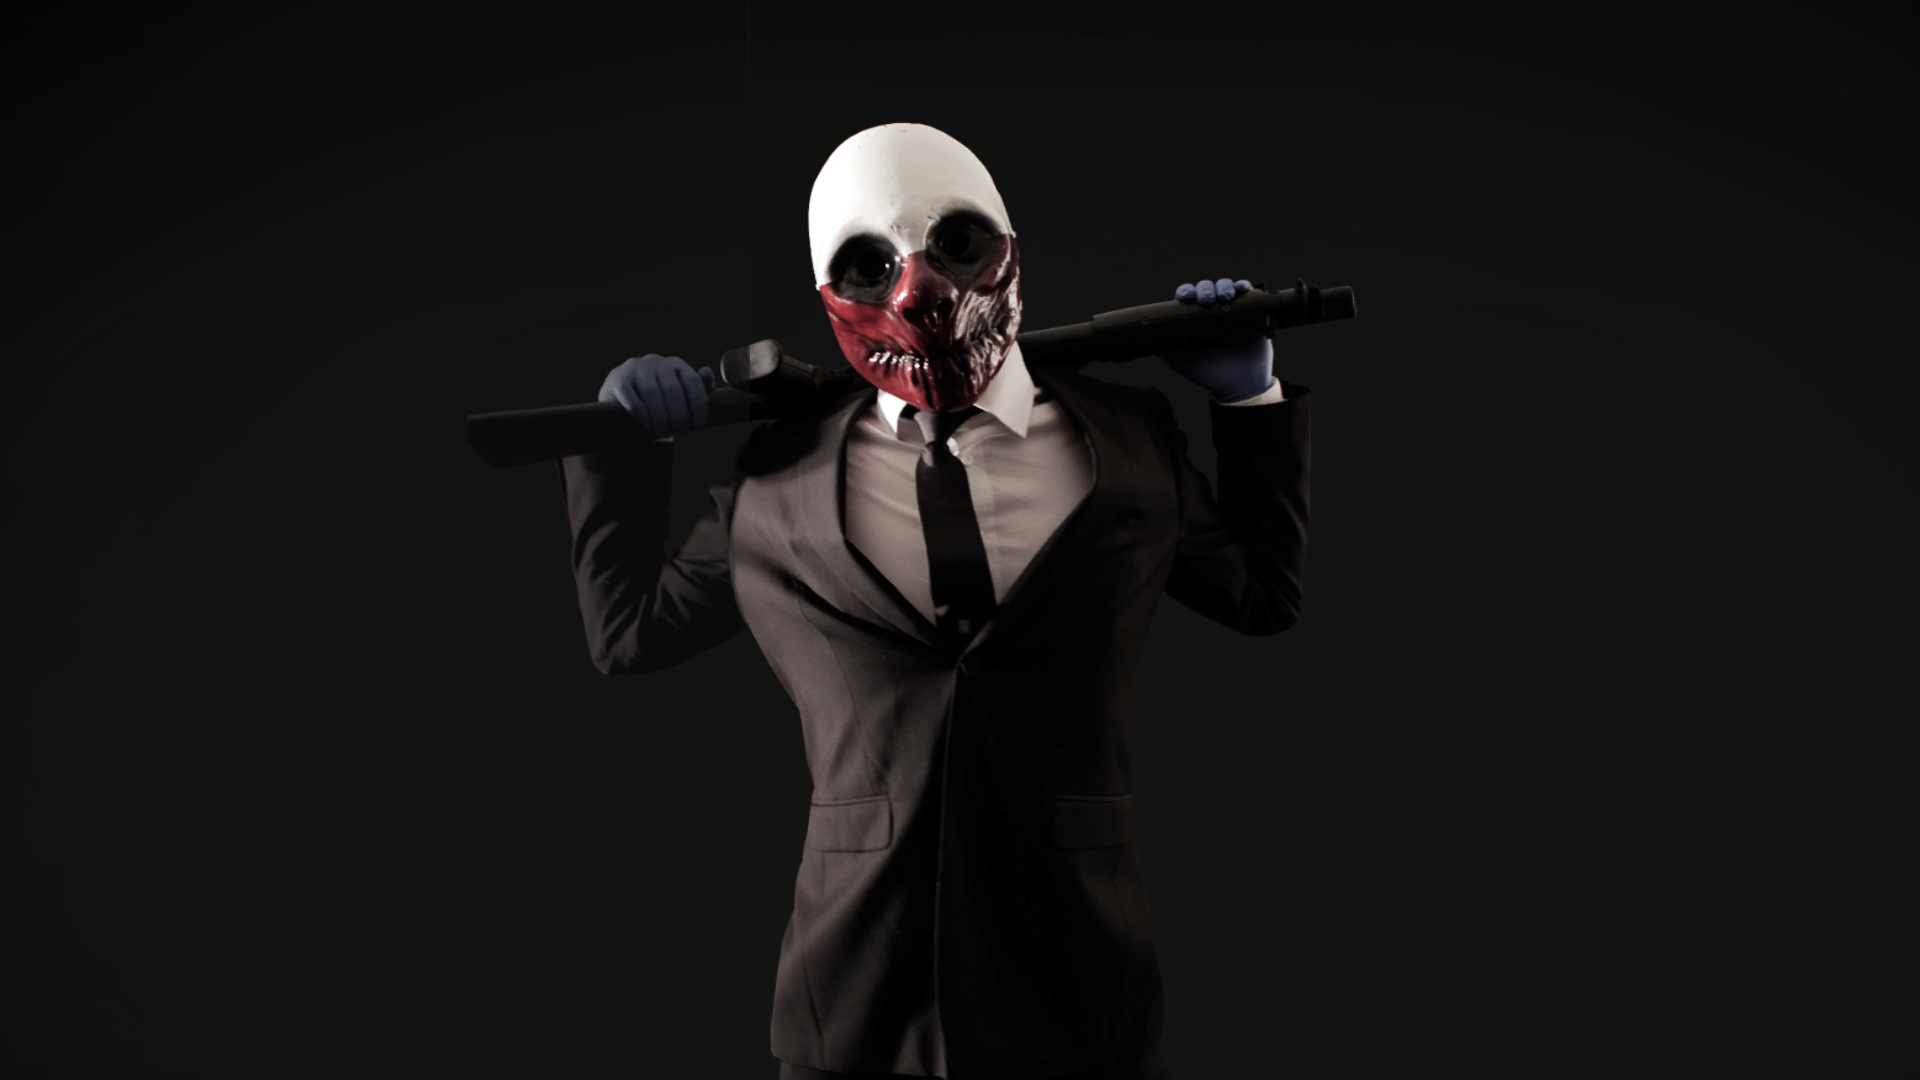 3d-console-games-payday-1920%C3%971080-wallpaper-wp340666